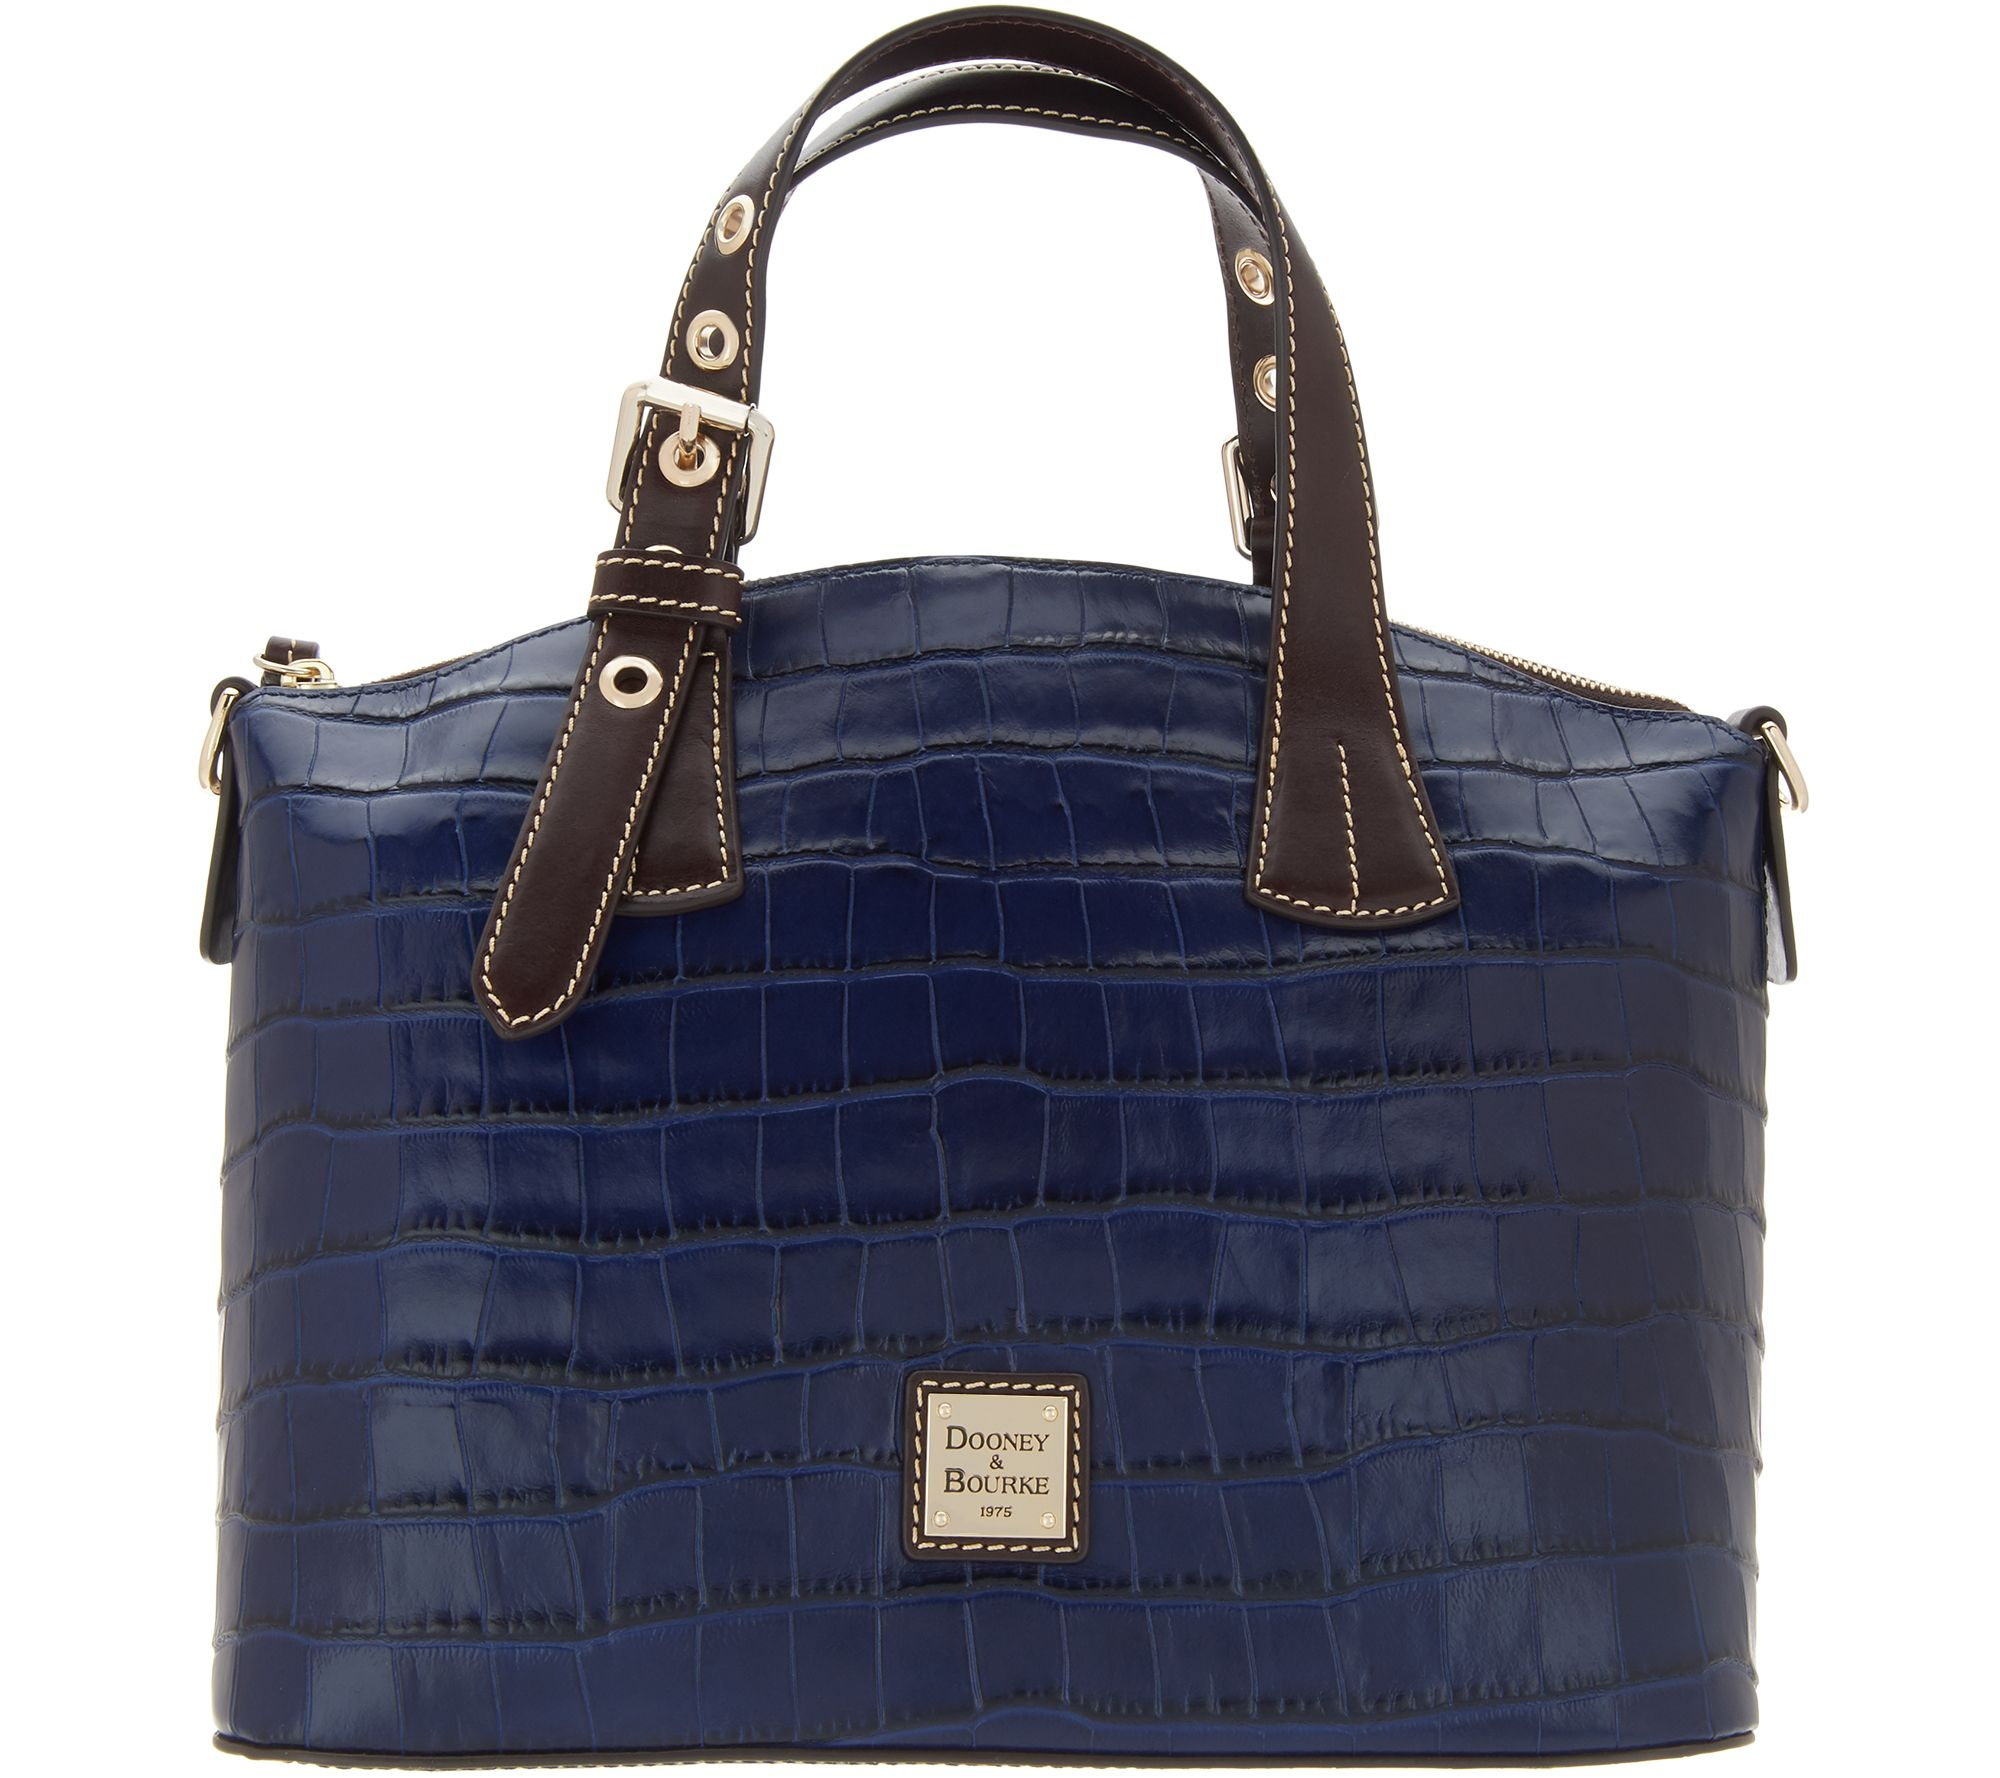 1bcc6e52d74f Dooney   Bourke Croco Embossed Leather Trina Satchel - Page 1 — QVC.com